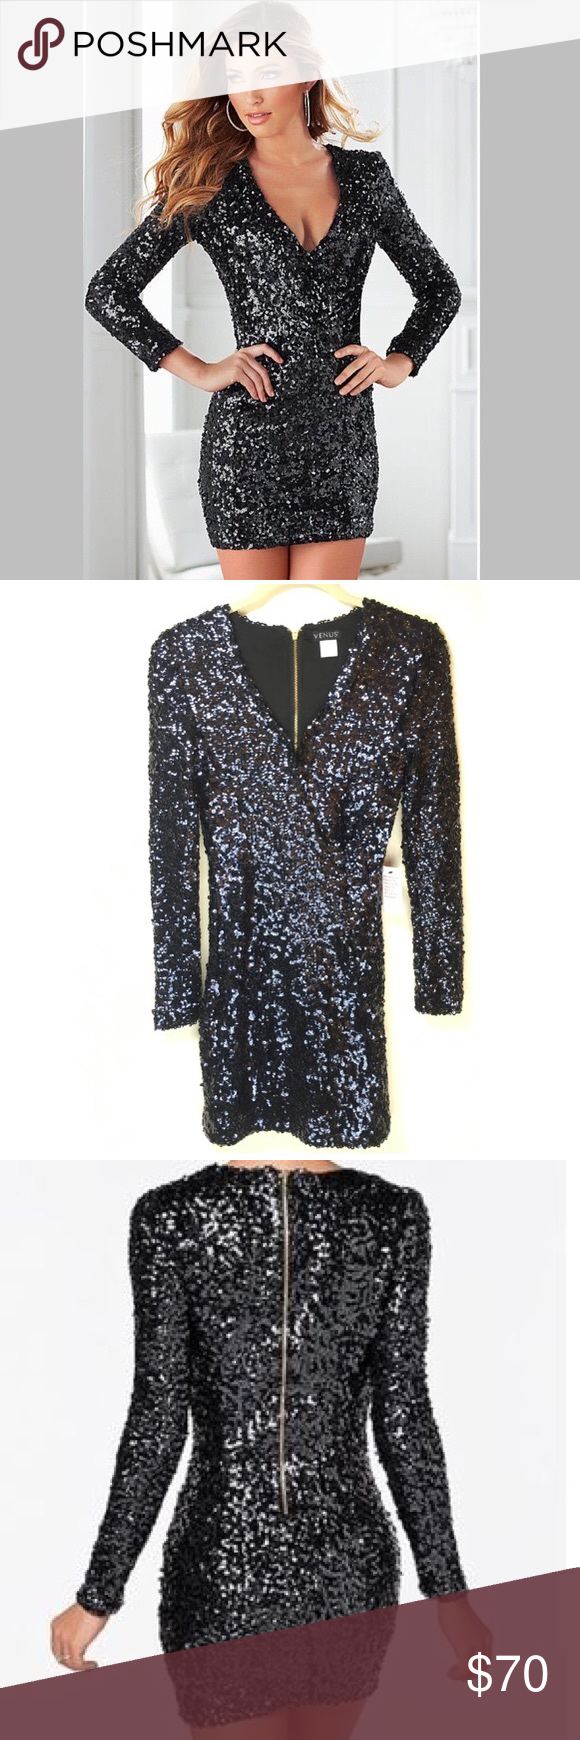 357b97b45cd4 Spotted while shopping on Poshmark: Long Sleeve V Neck Black Sequin Dress!  #poshmark #fashion #shopping #style #VENUS #Dresses & Skirts